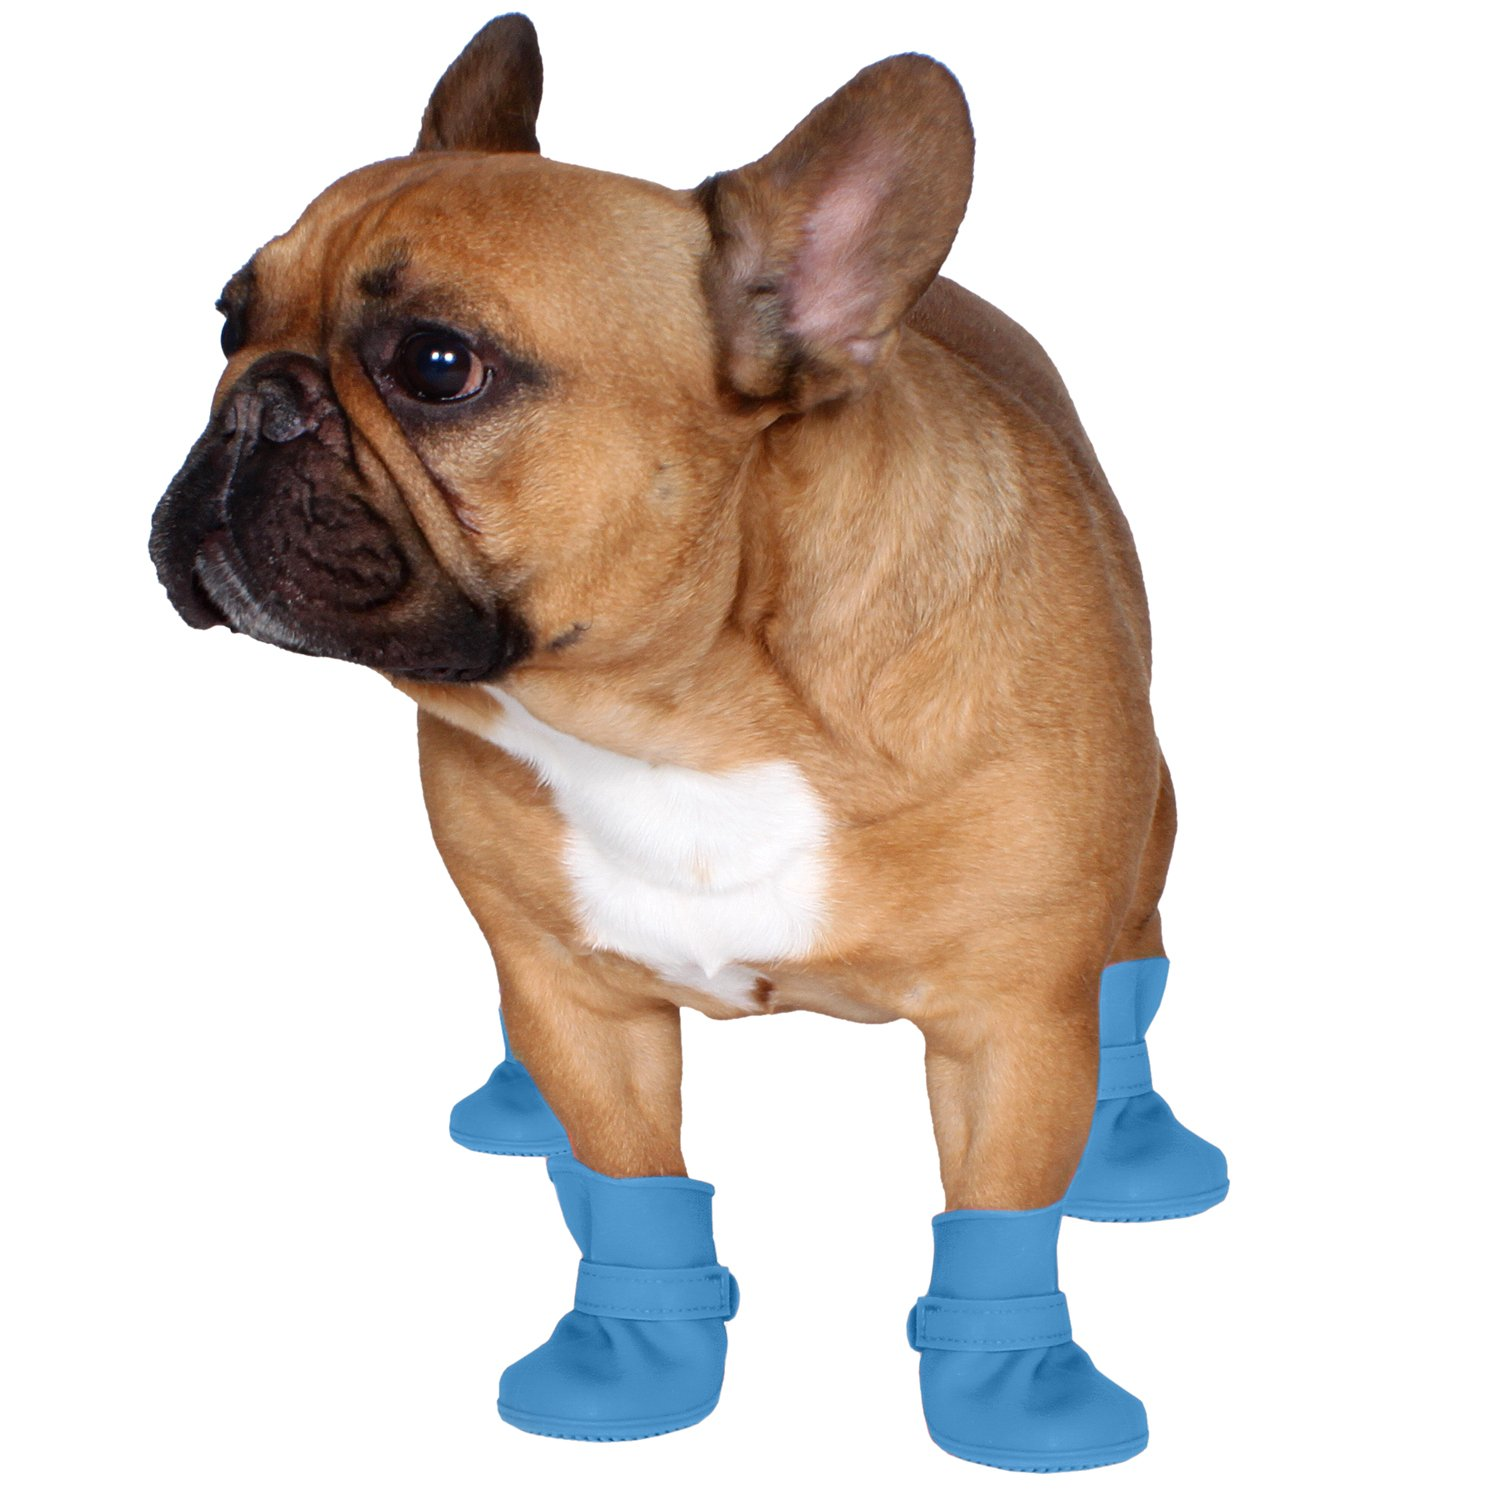 c1763a3553325 Jelly Wellies Preimum Rain or Shine Waterproof Dog Boot with Extra Firm  Gripping Soles